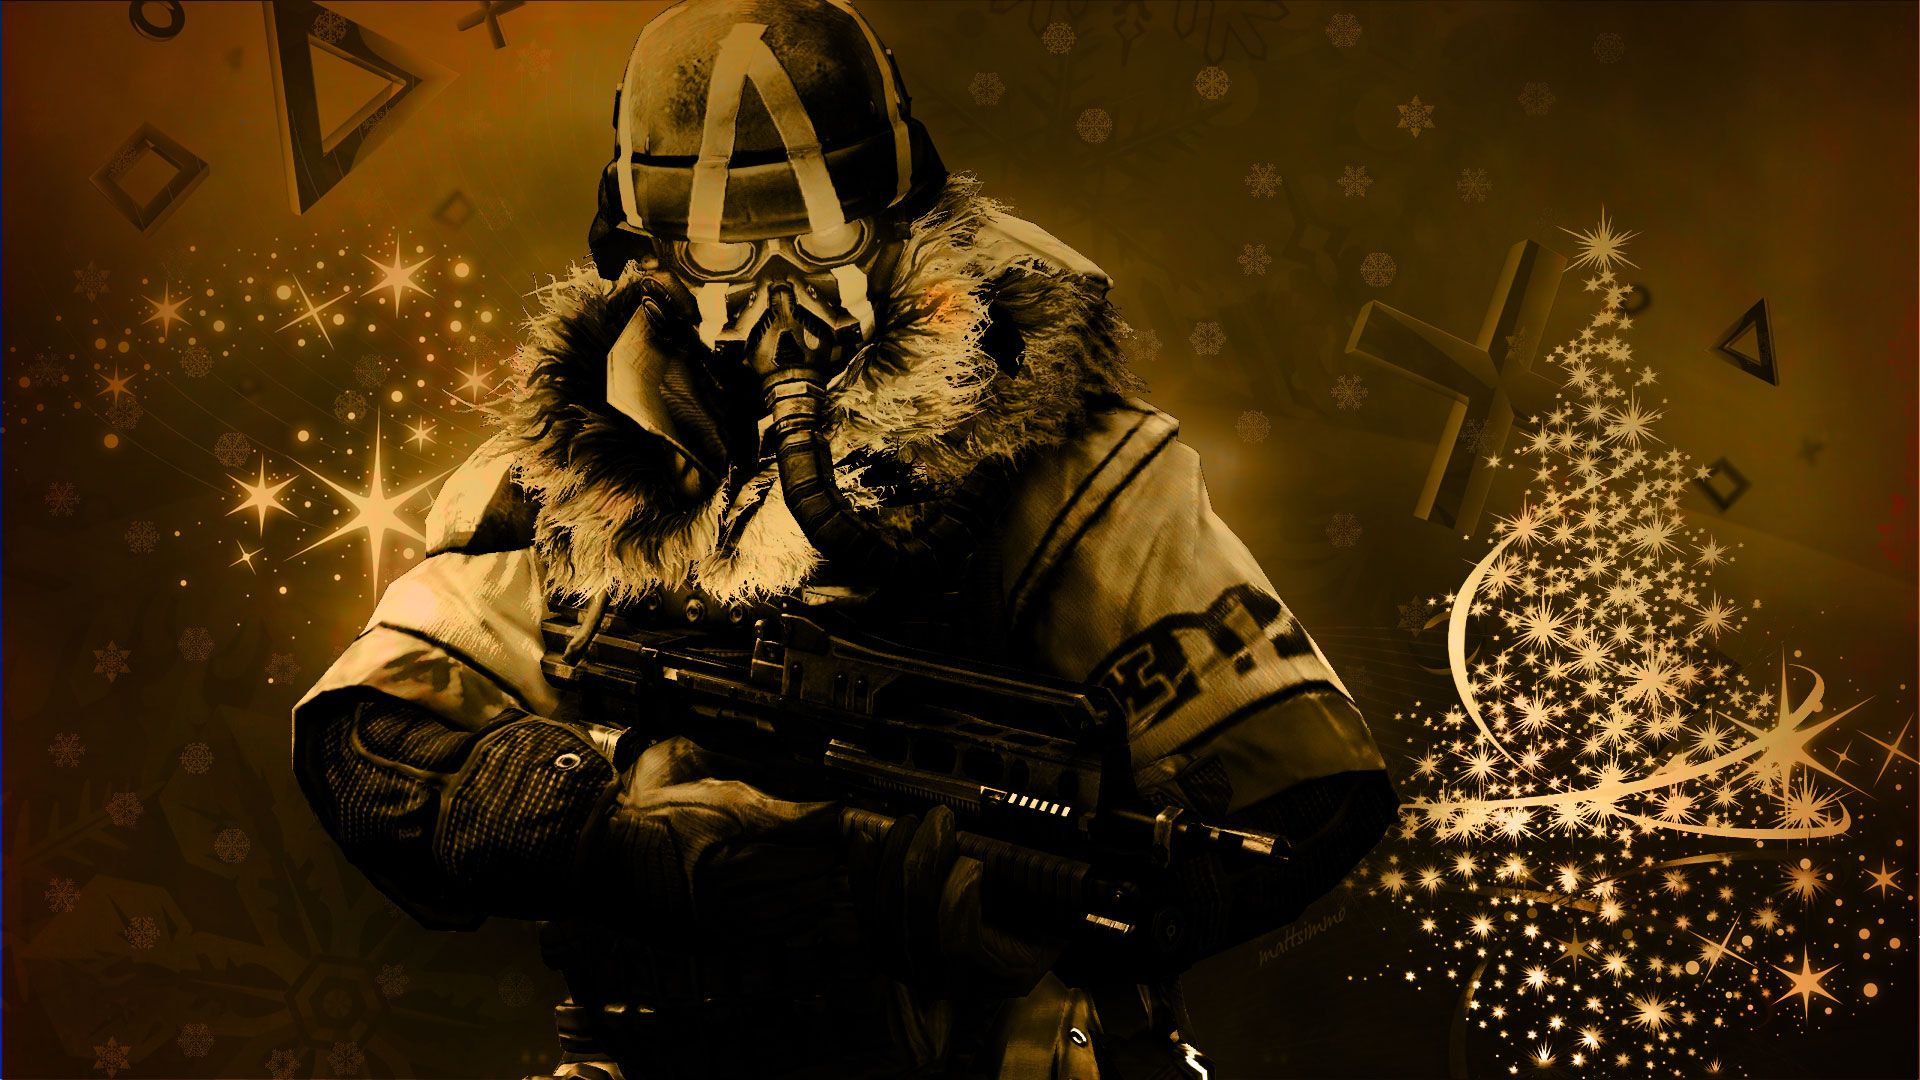 1920x1080 KILLZONE warrior soldier sci-fi christmas f wallpaper | 1920x1080 ...